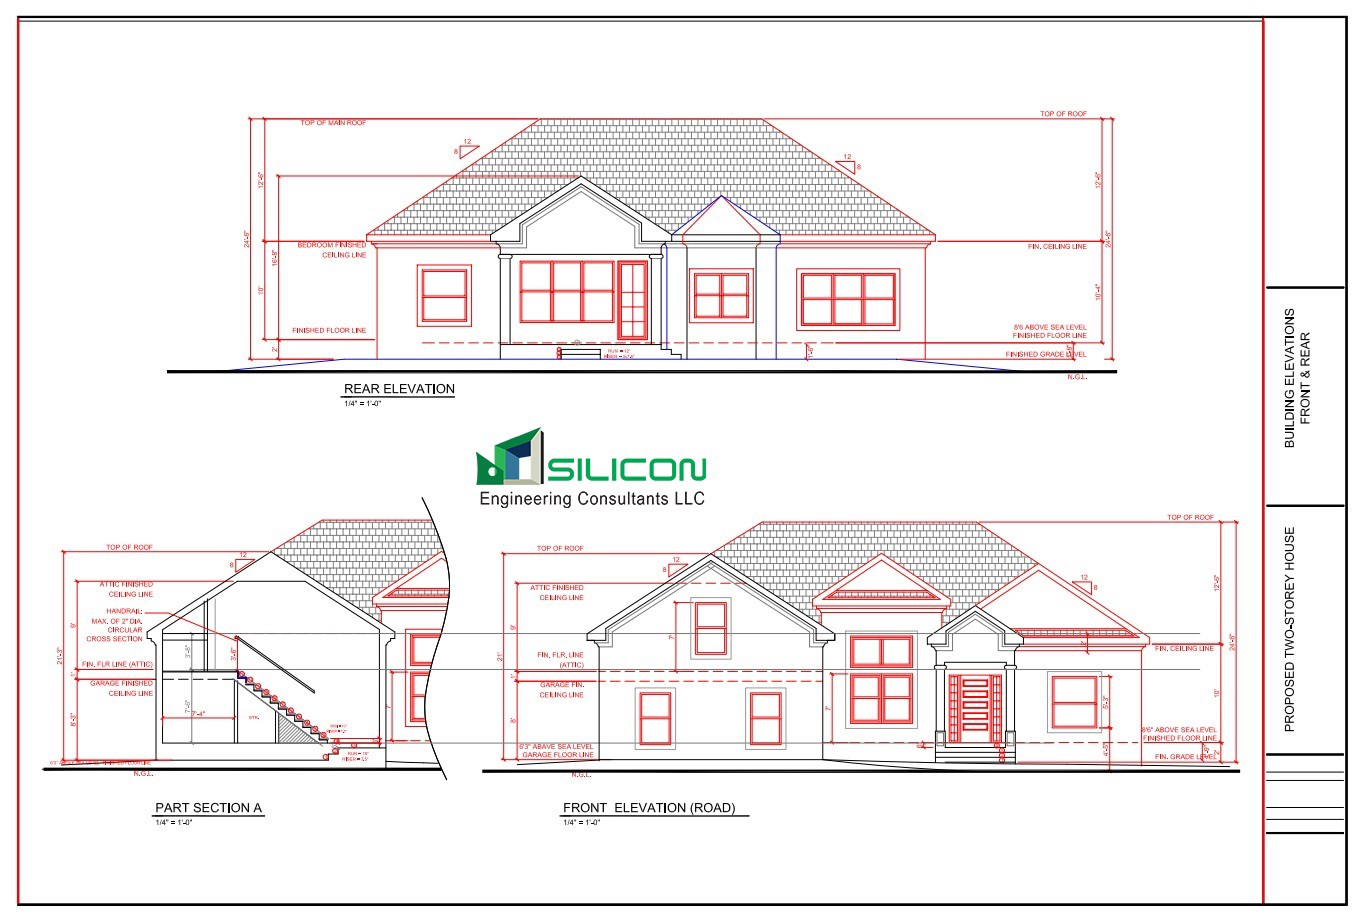 1368x922 Architectural Interior Construction Plans Drawings Services Usa